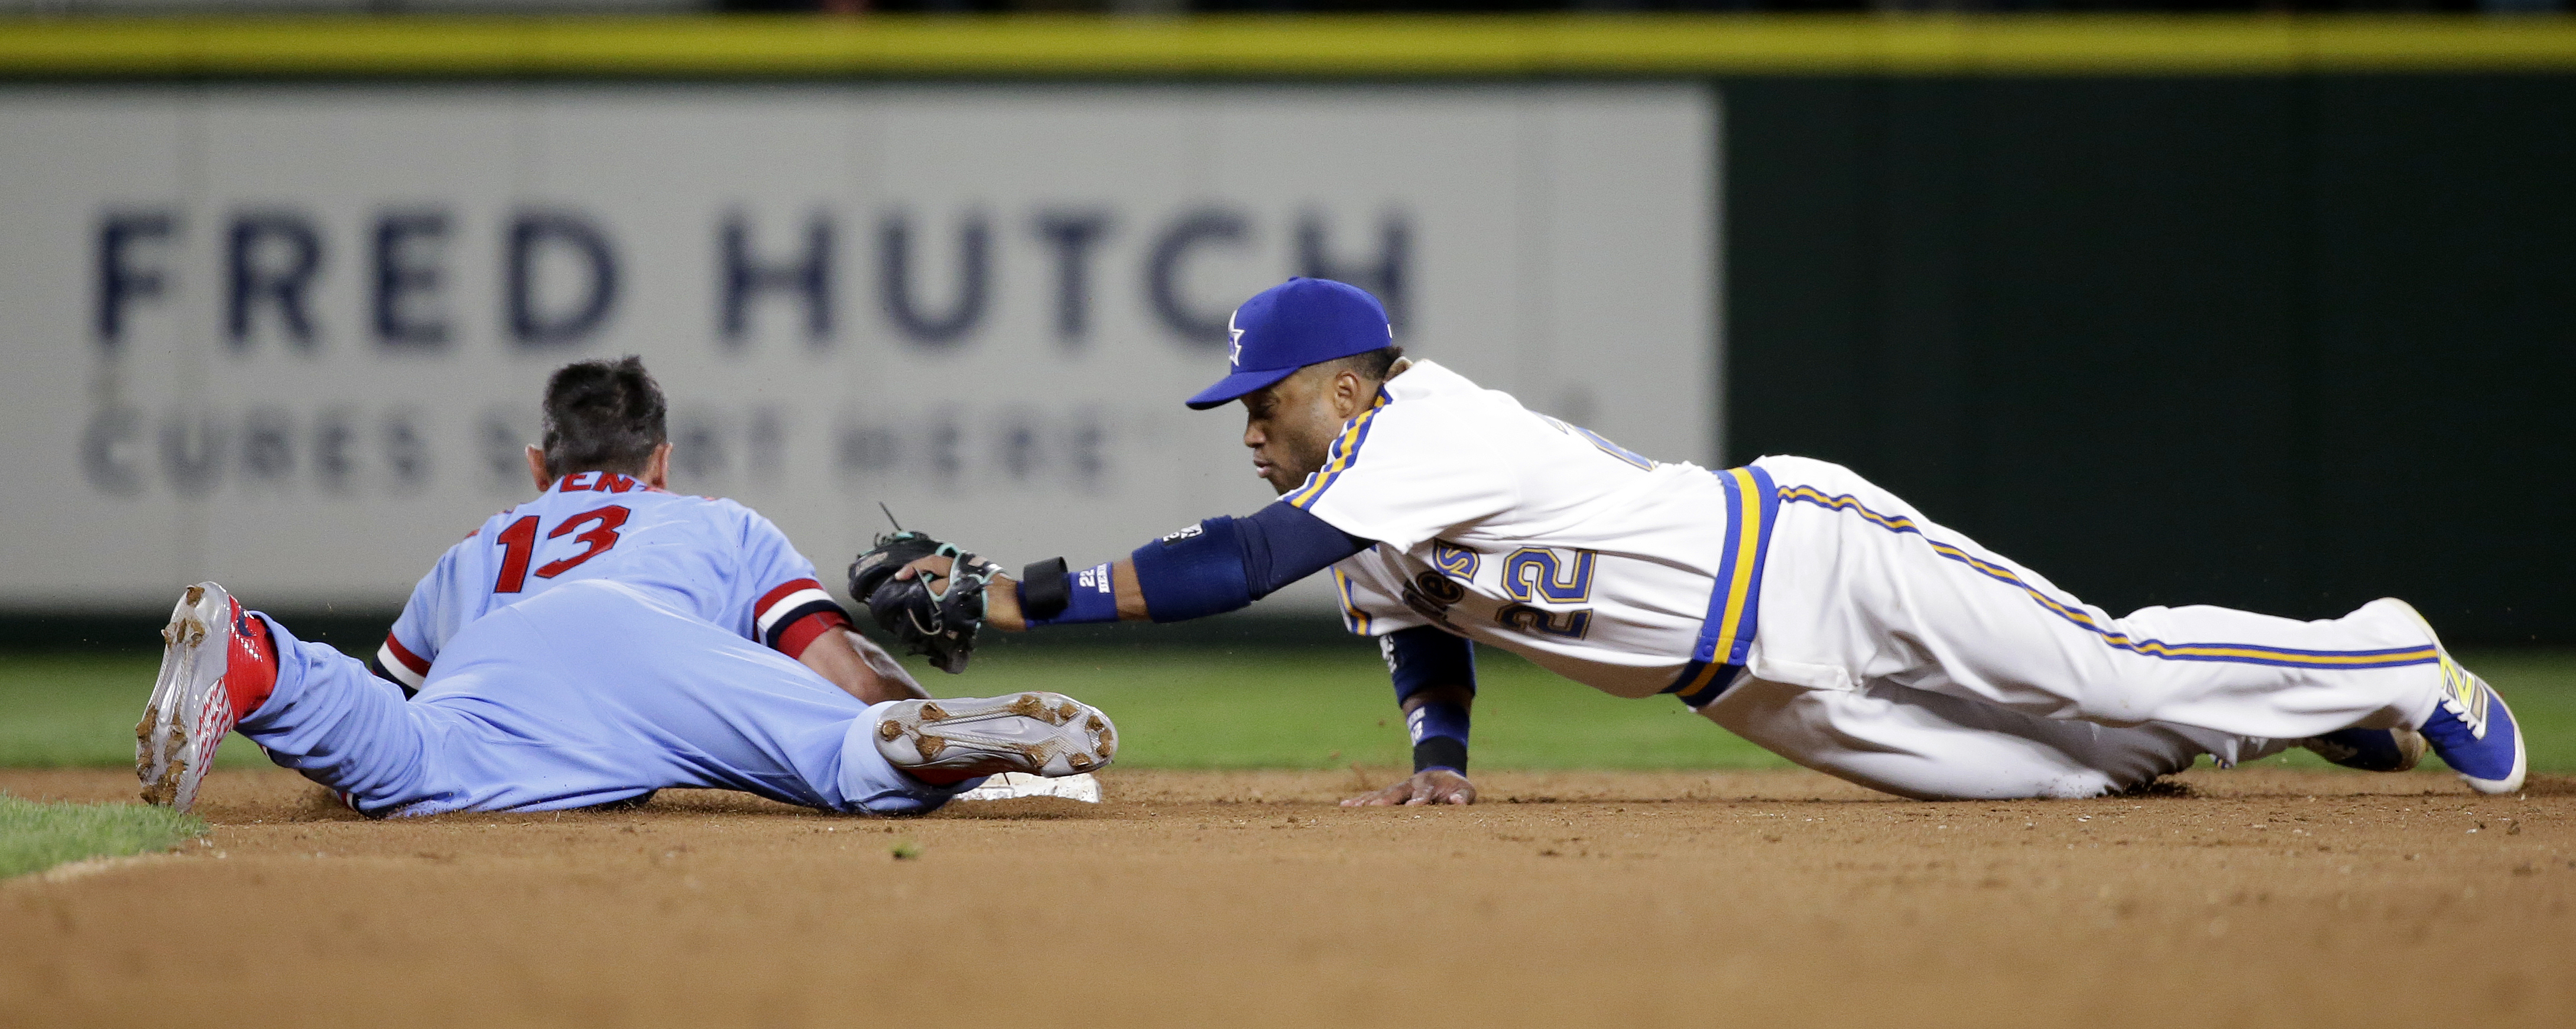 Seattle Mariners second baseman Robinson Cano (22) reaches for St. Louis Cardinals' Matt Carpenter on Carpenter's double in the ninth inning of a baseball game Saturday, June 25, 2016, in Seattle. The Mariners won 5-4. (AP Photo/Elaine Thompson)